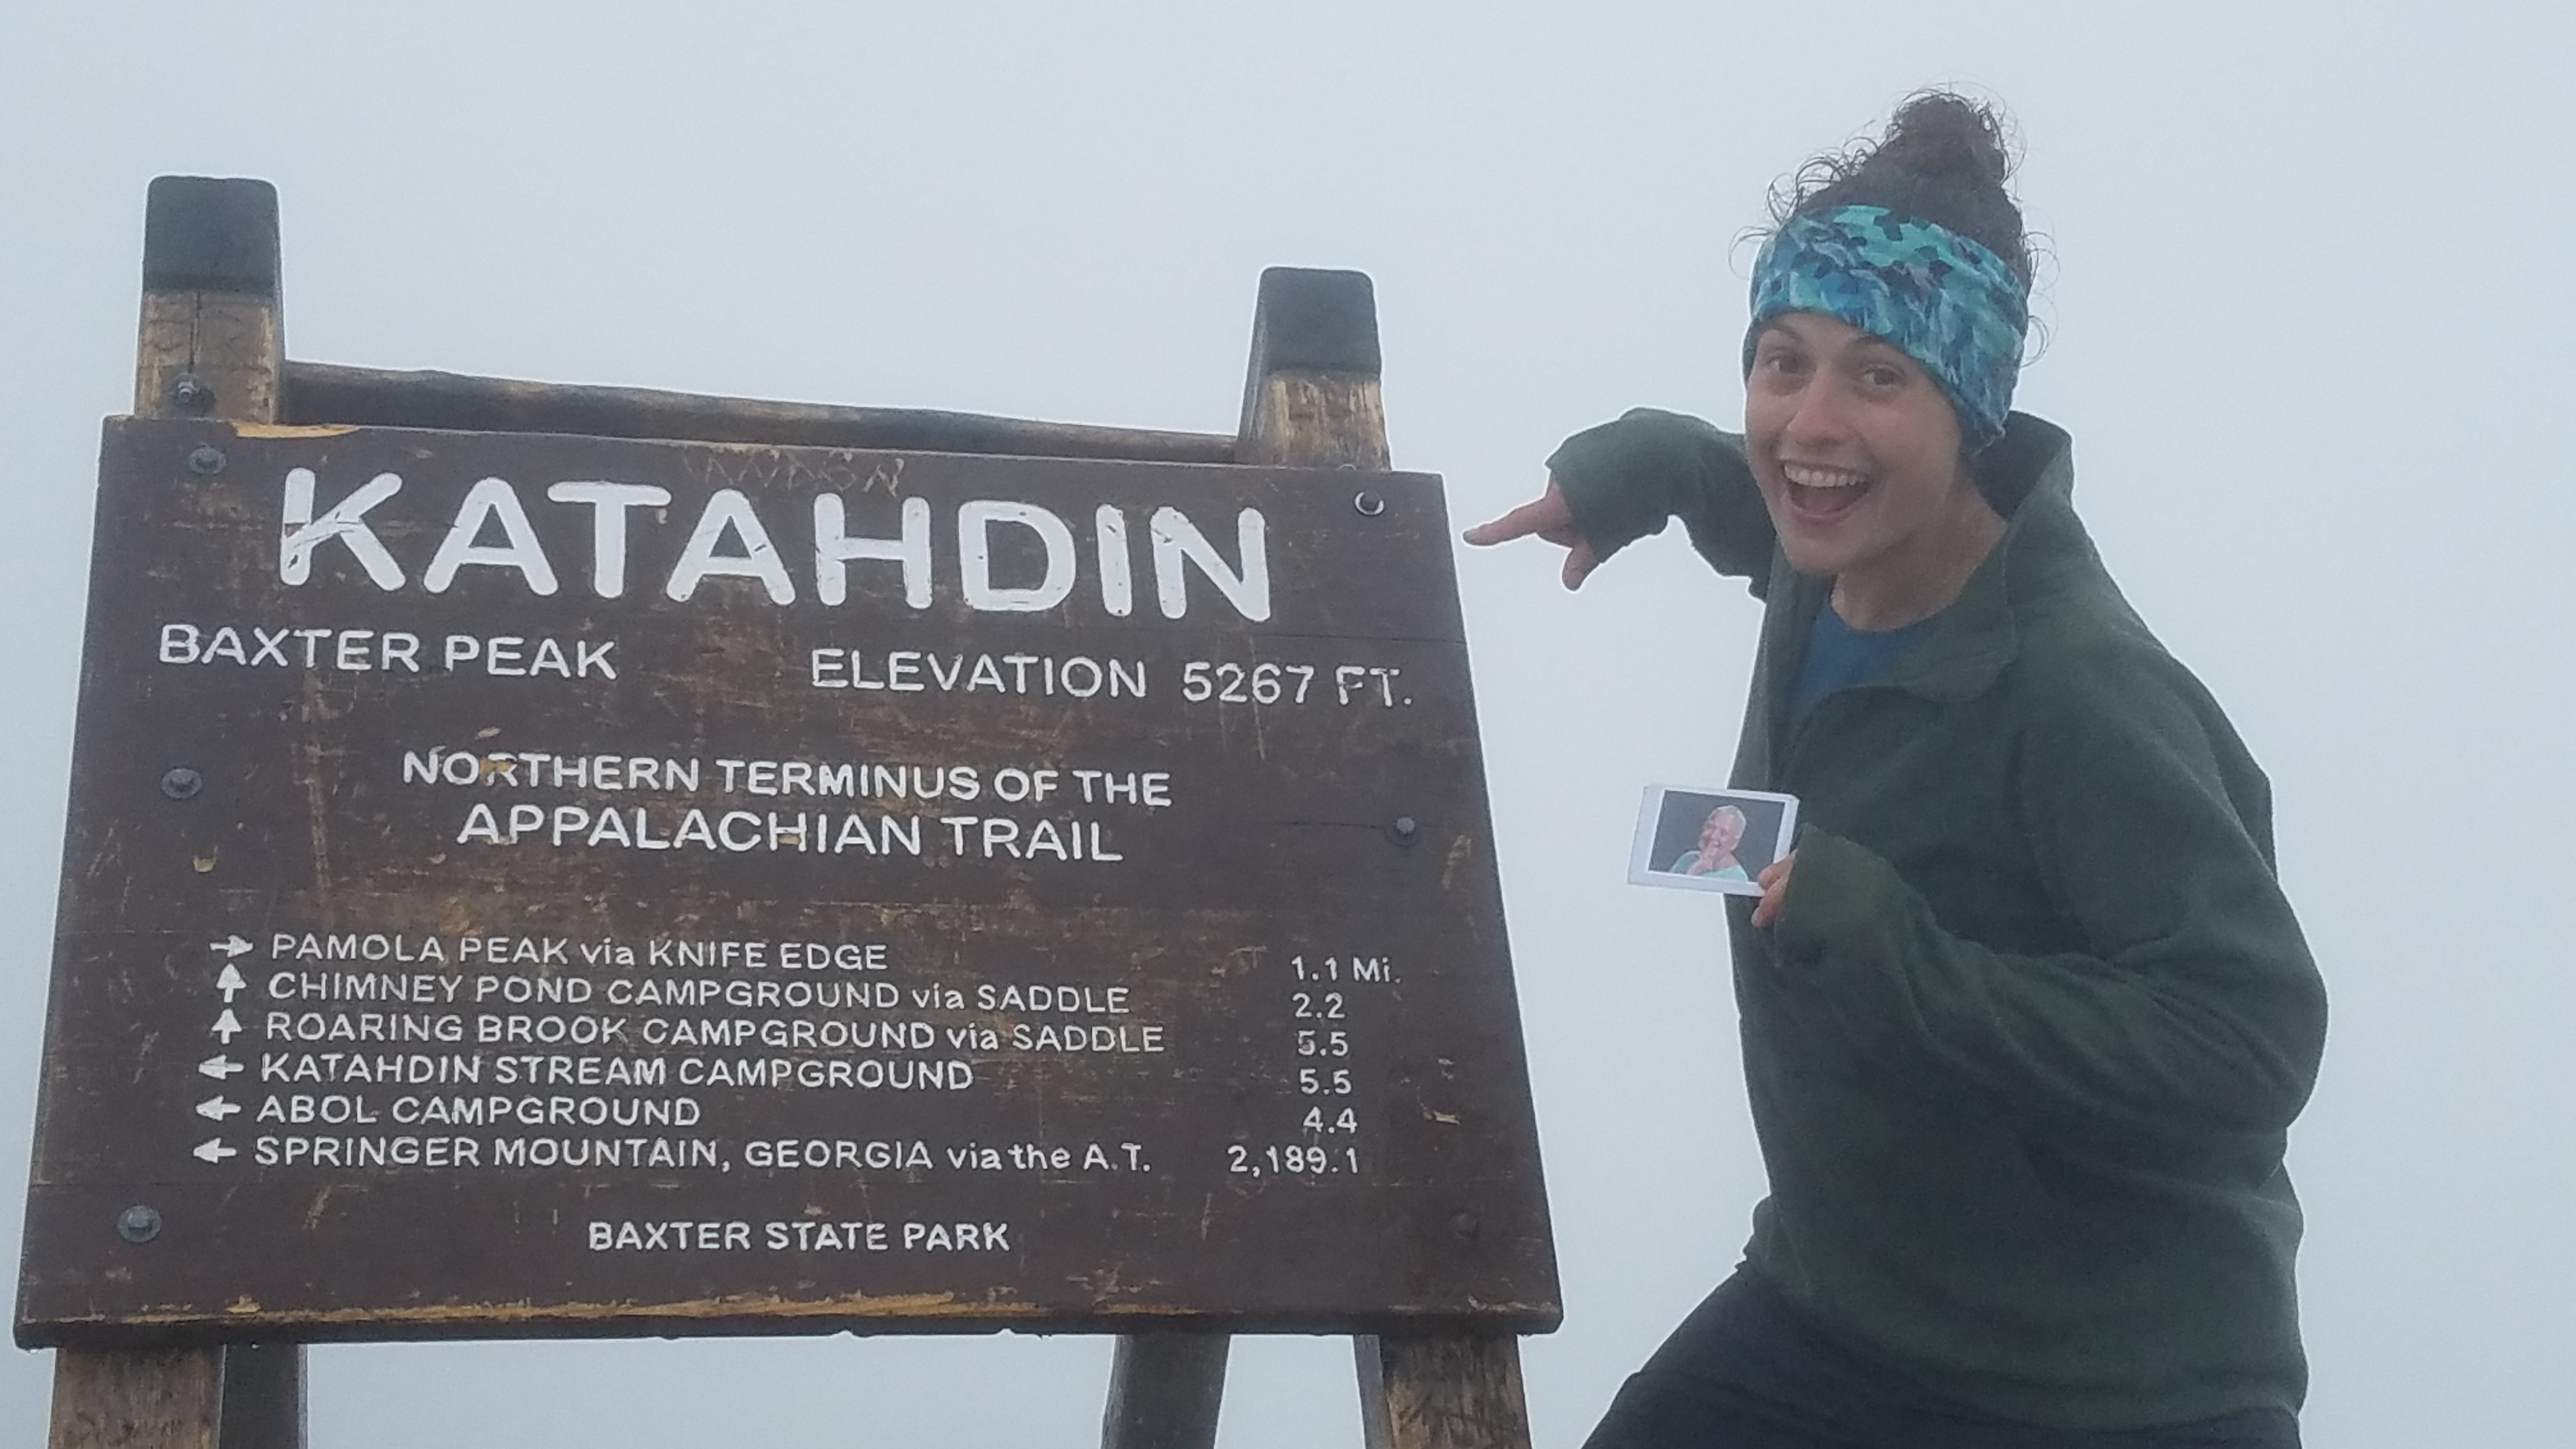 Wetfoot & Arry, Vol 9. Days 17 & 18: Katahdin! - The Trek